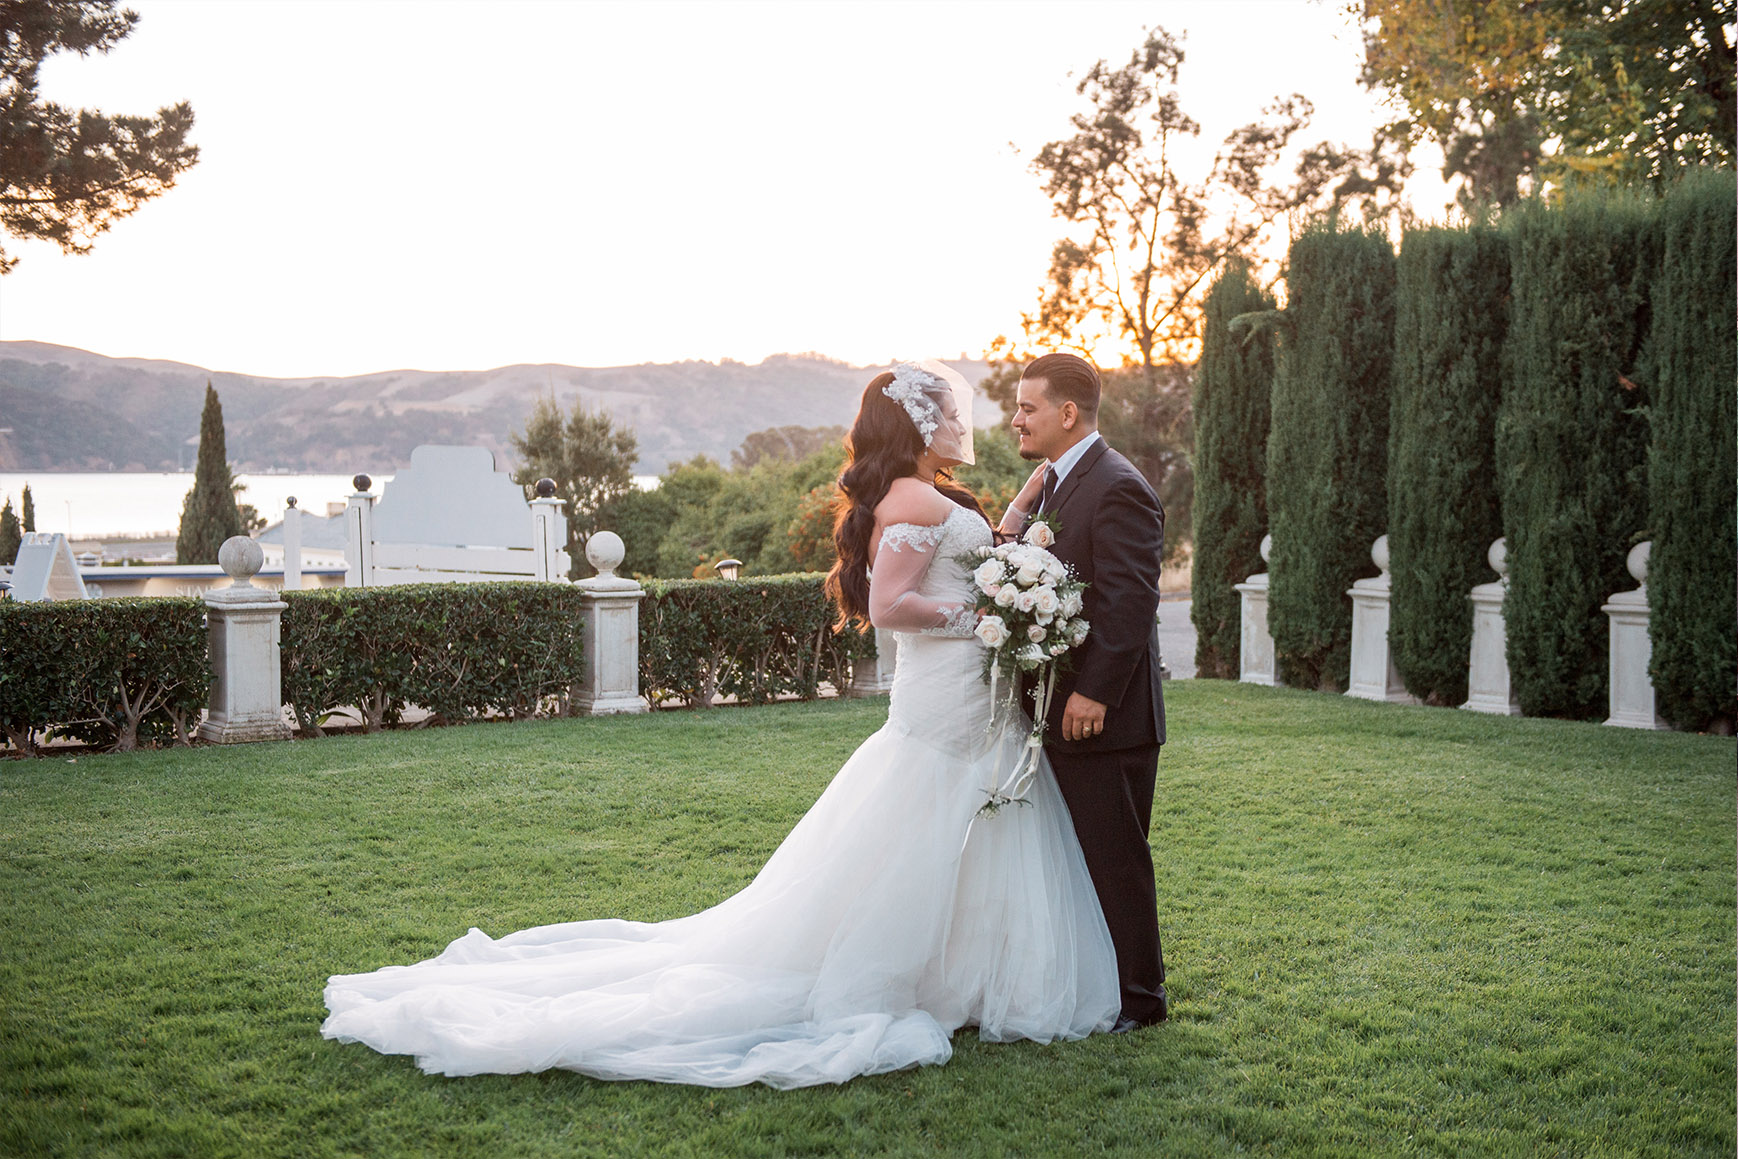 Bride and groom pose in the perfectly manicured grounds - Jefferson Street Mansion - Benicia, California - Solano County - Wedgewood Weddings